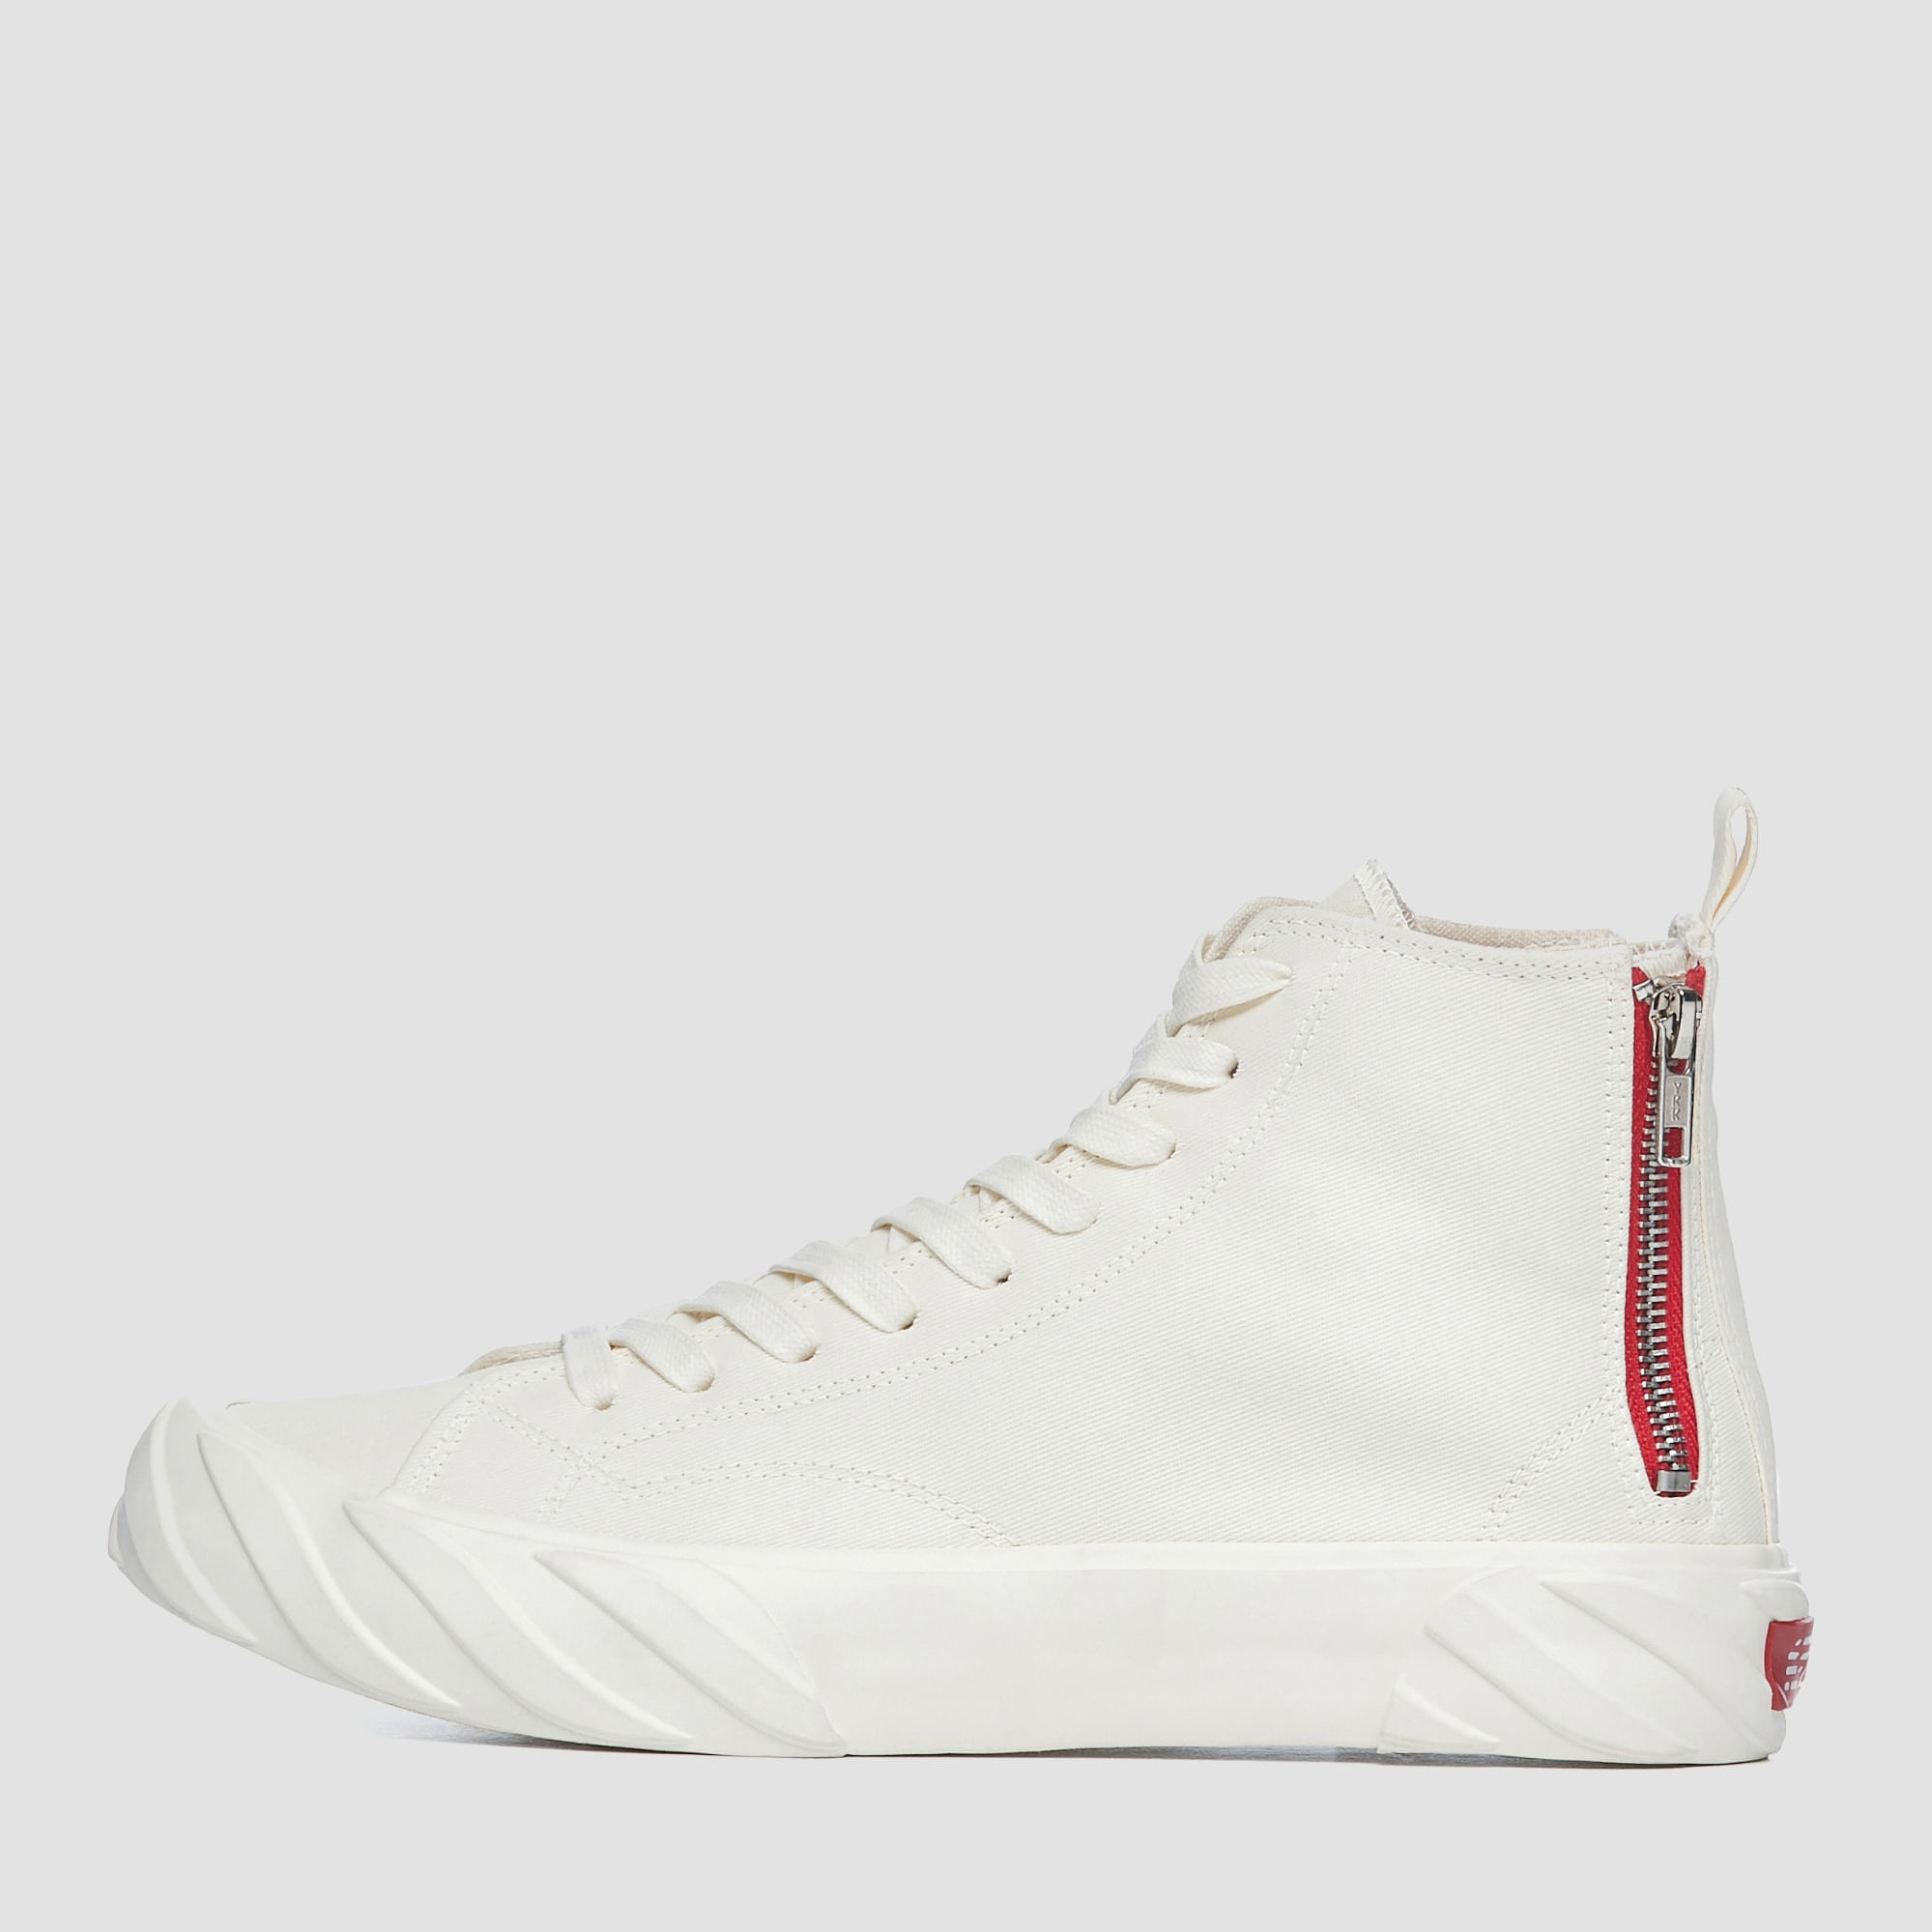 AGE TOP SNEAKERS WHITE/RED